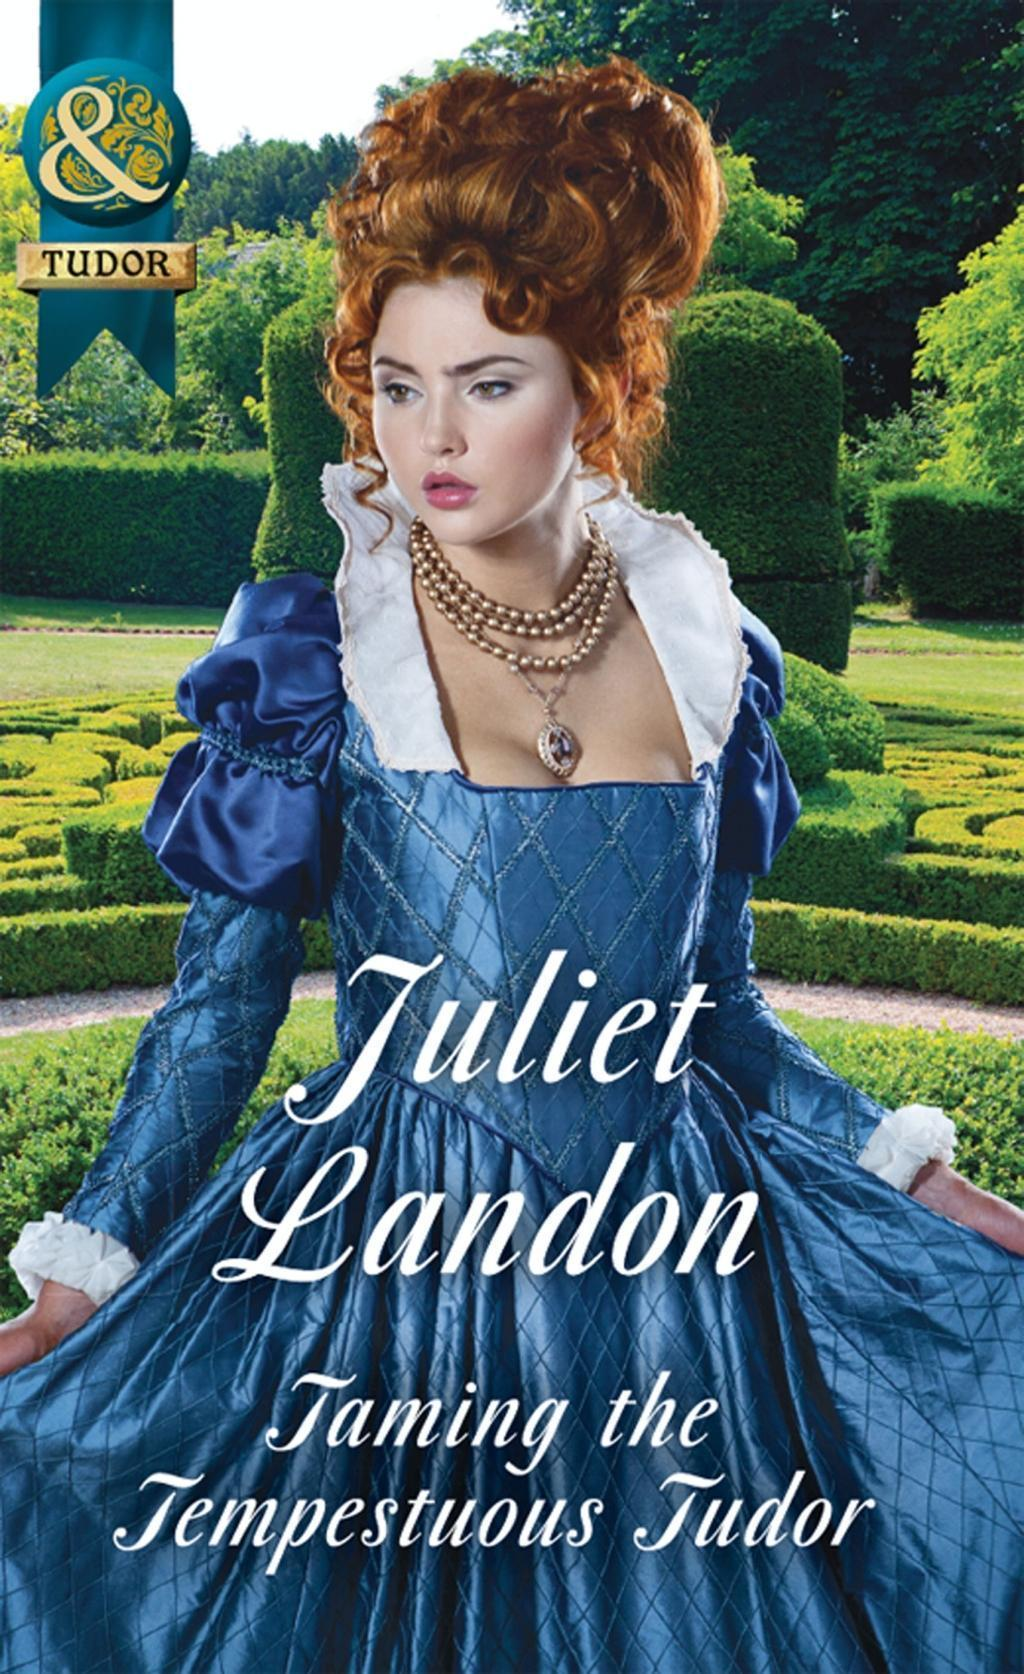 Taming The Tempestuous Tudor (Mills & Boon Historical) (At the Tudor Court, Book 2)